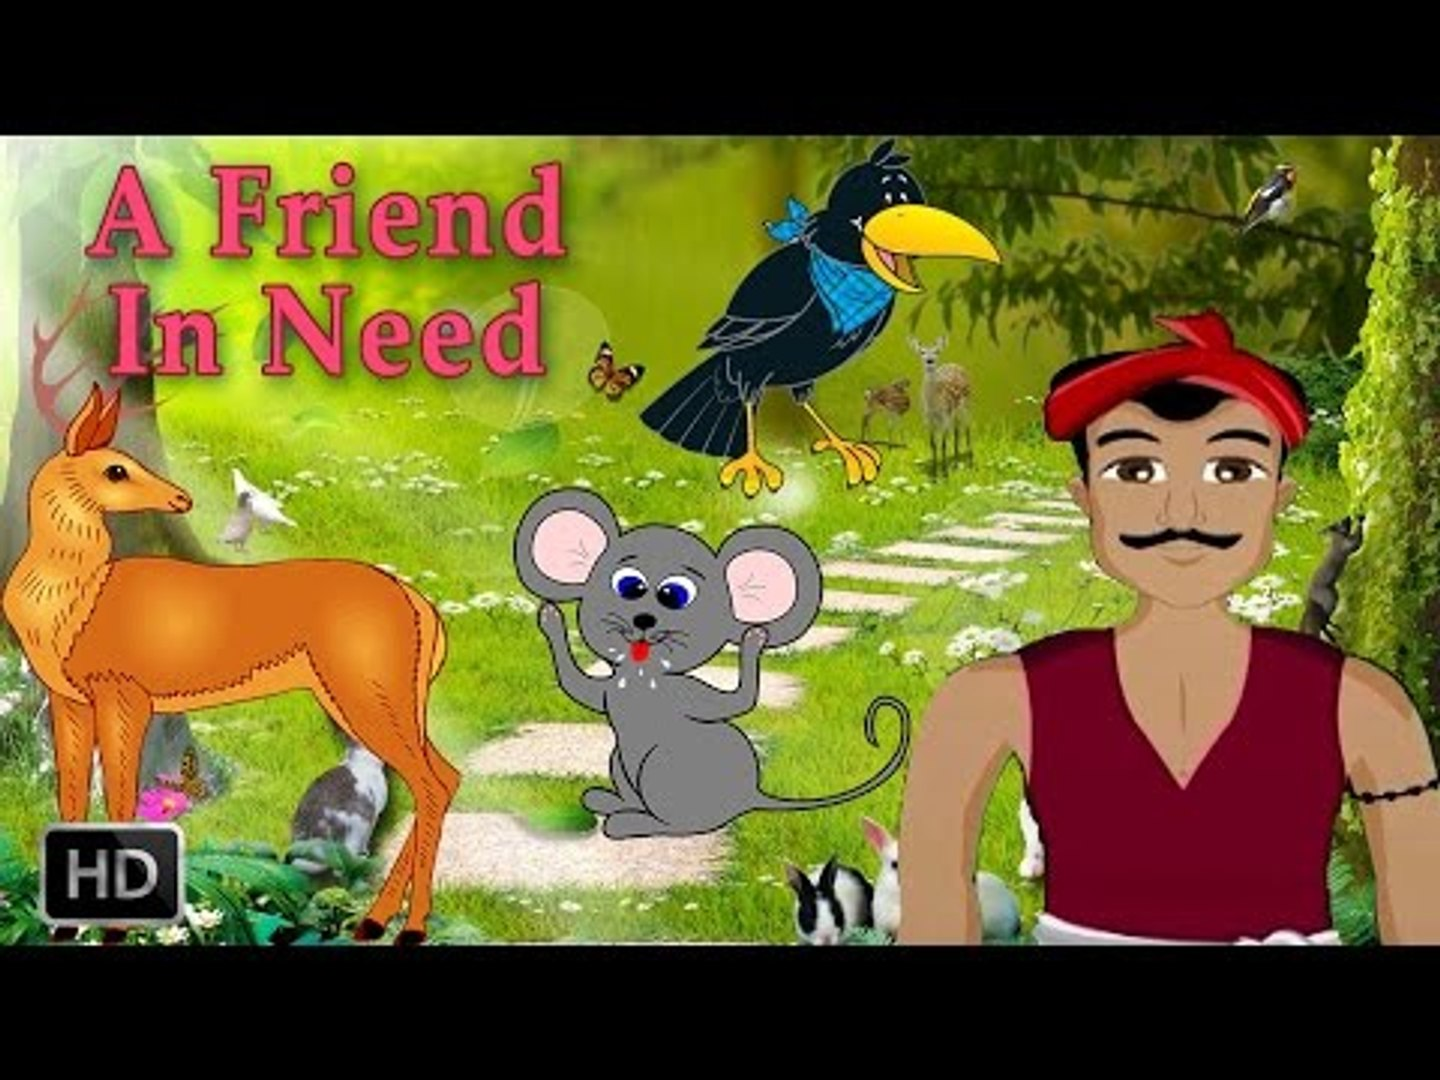 Forest Stories For Children - Animal Stories - A Friend In Need - Short Moral Stories For Kids